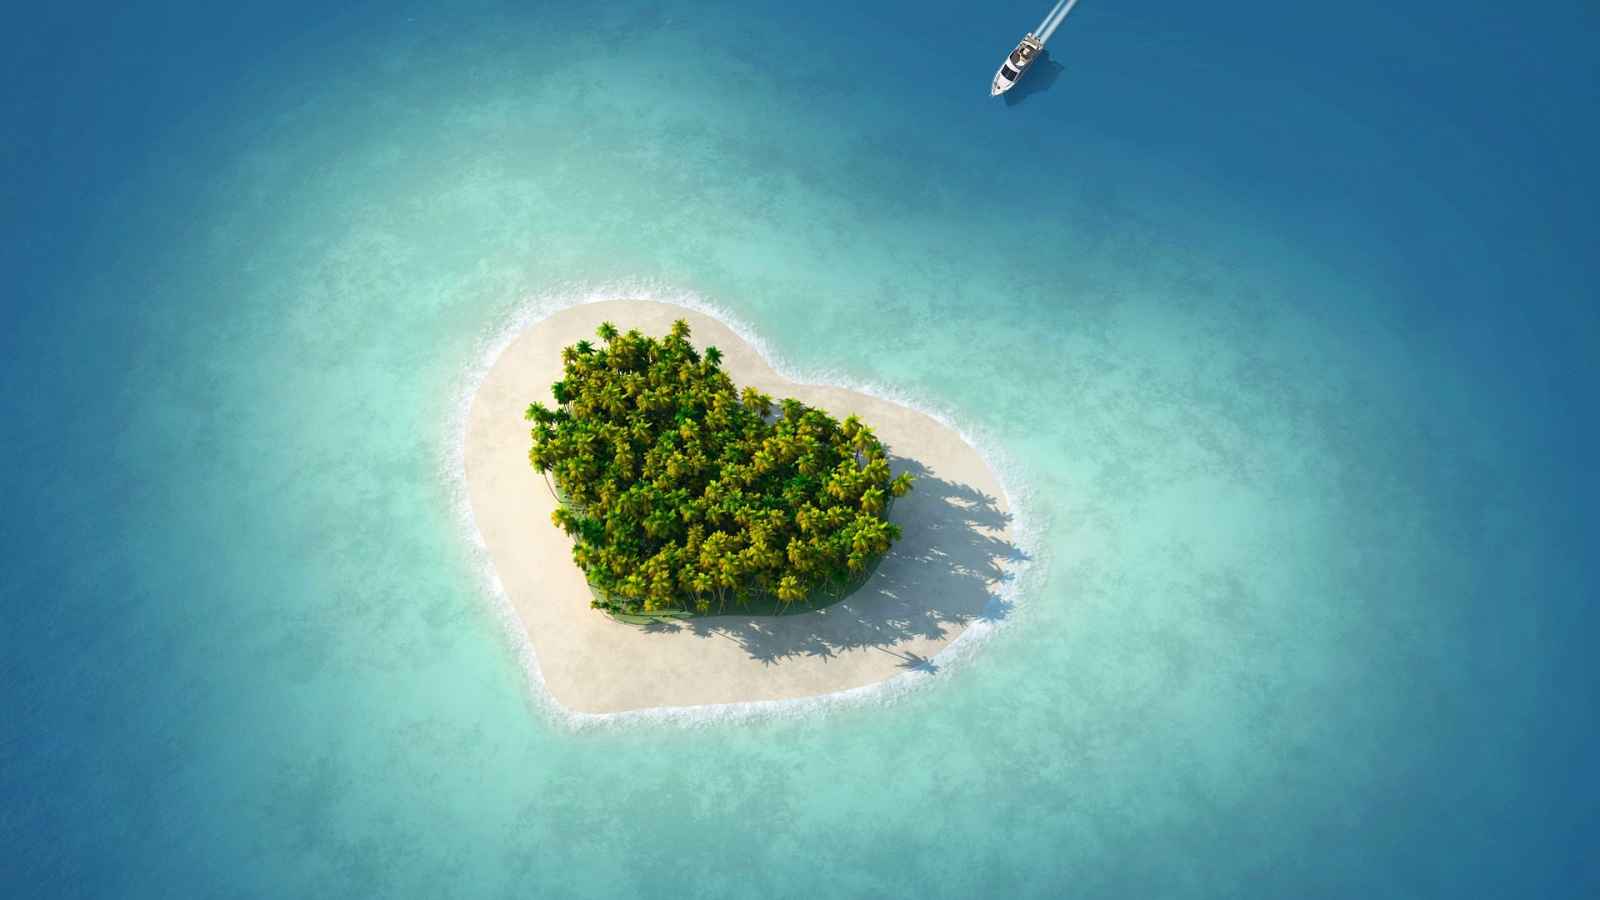 downloads download Natural Wallpaper Background Love Island 1600x900